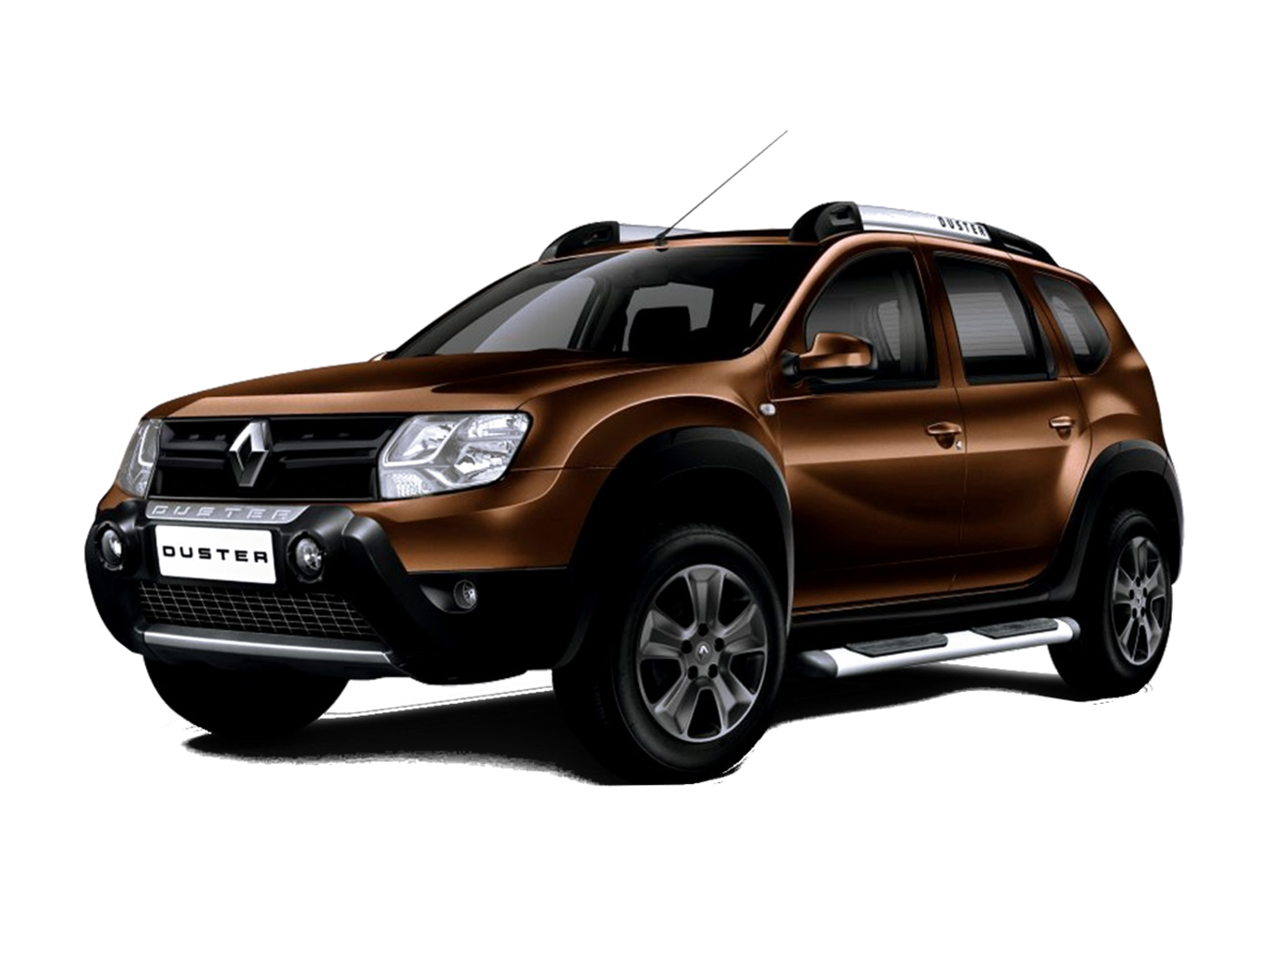 renault duster in uae prices. Black Bedroom Furniture Sets. Home Design Ideas